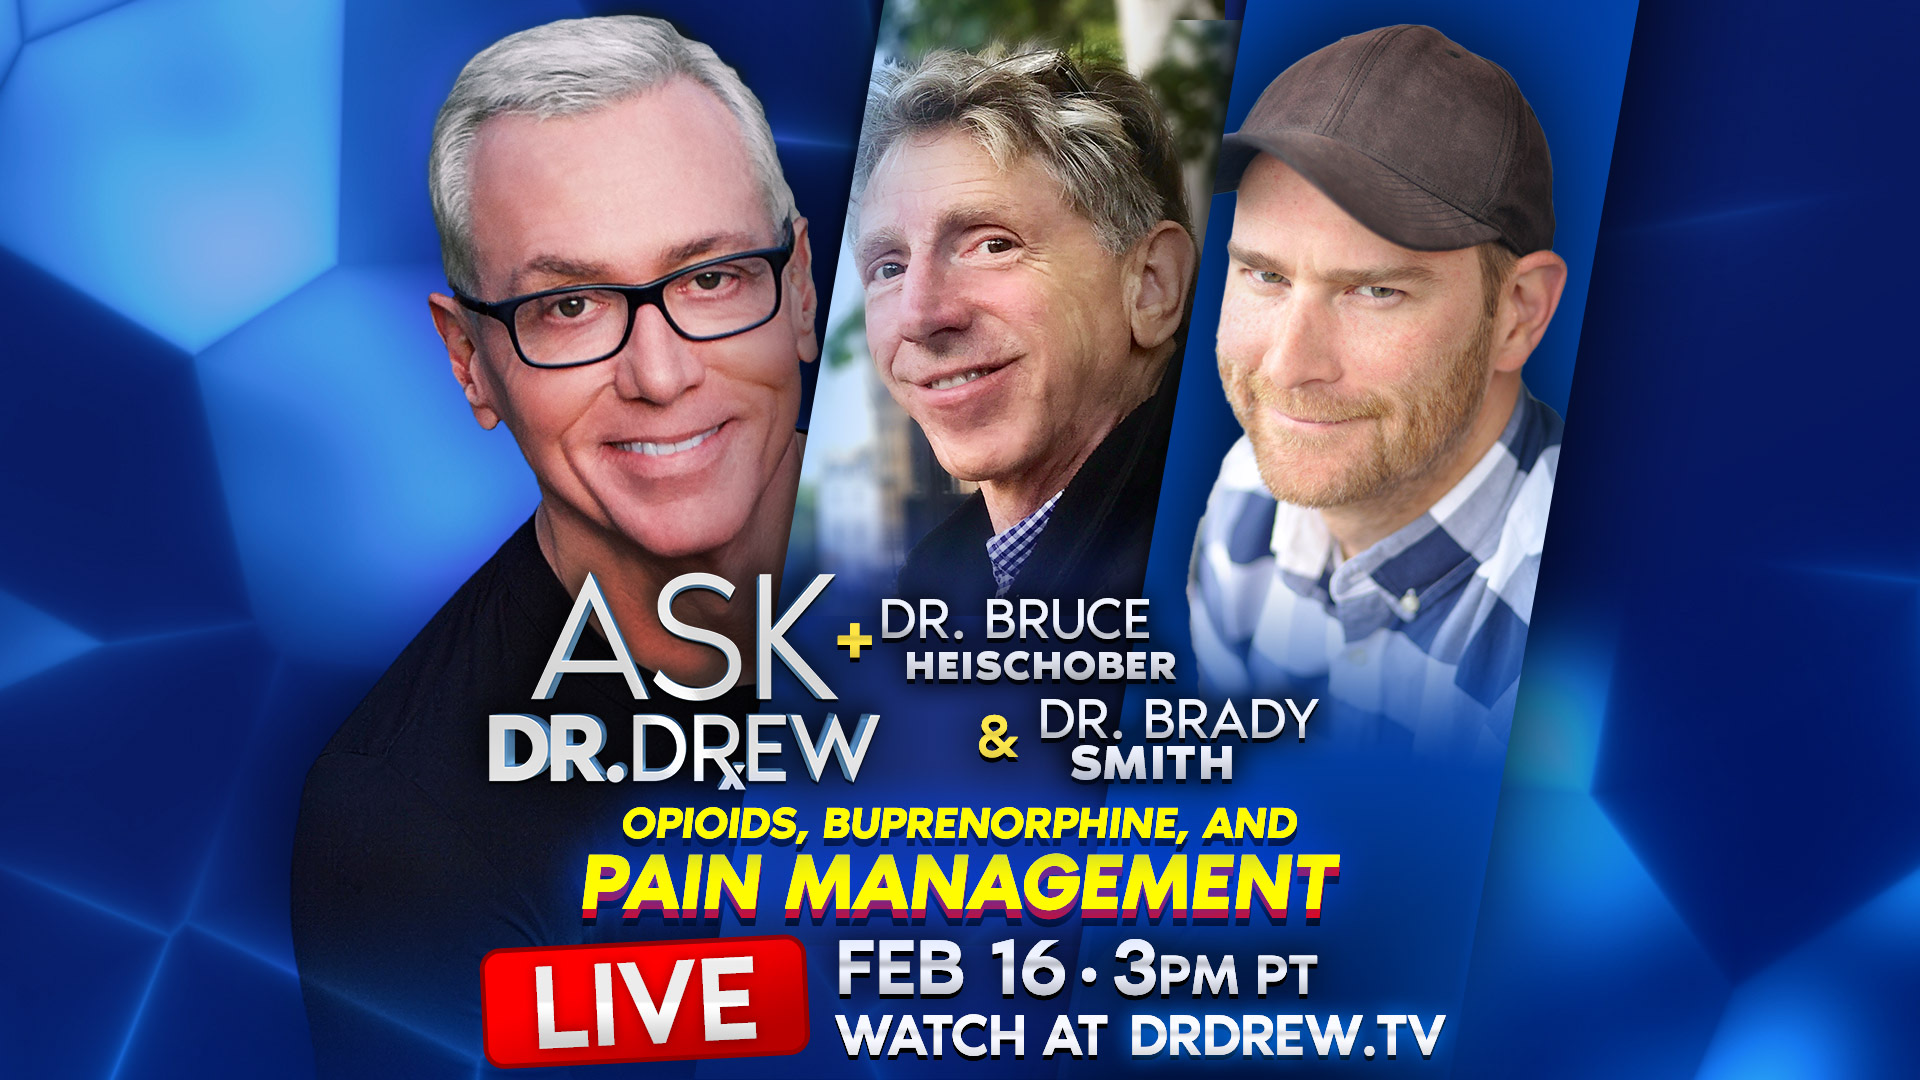 Ask Dr. Drew & Dr. Bruce Heischober on Opioids, Suboxone, and Pain Management